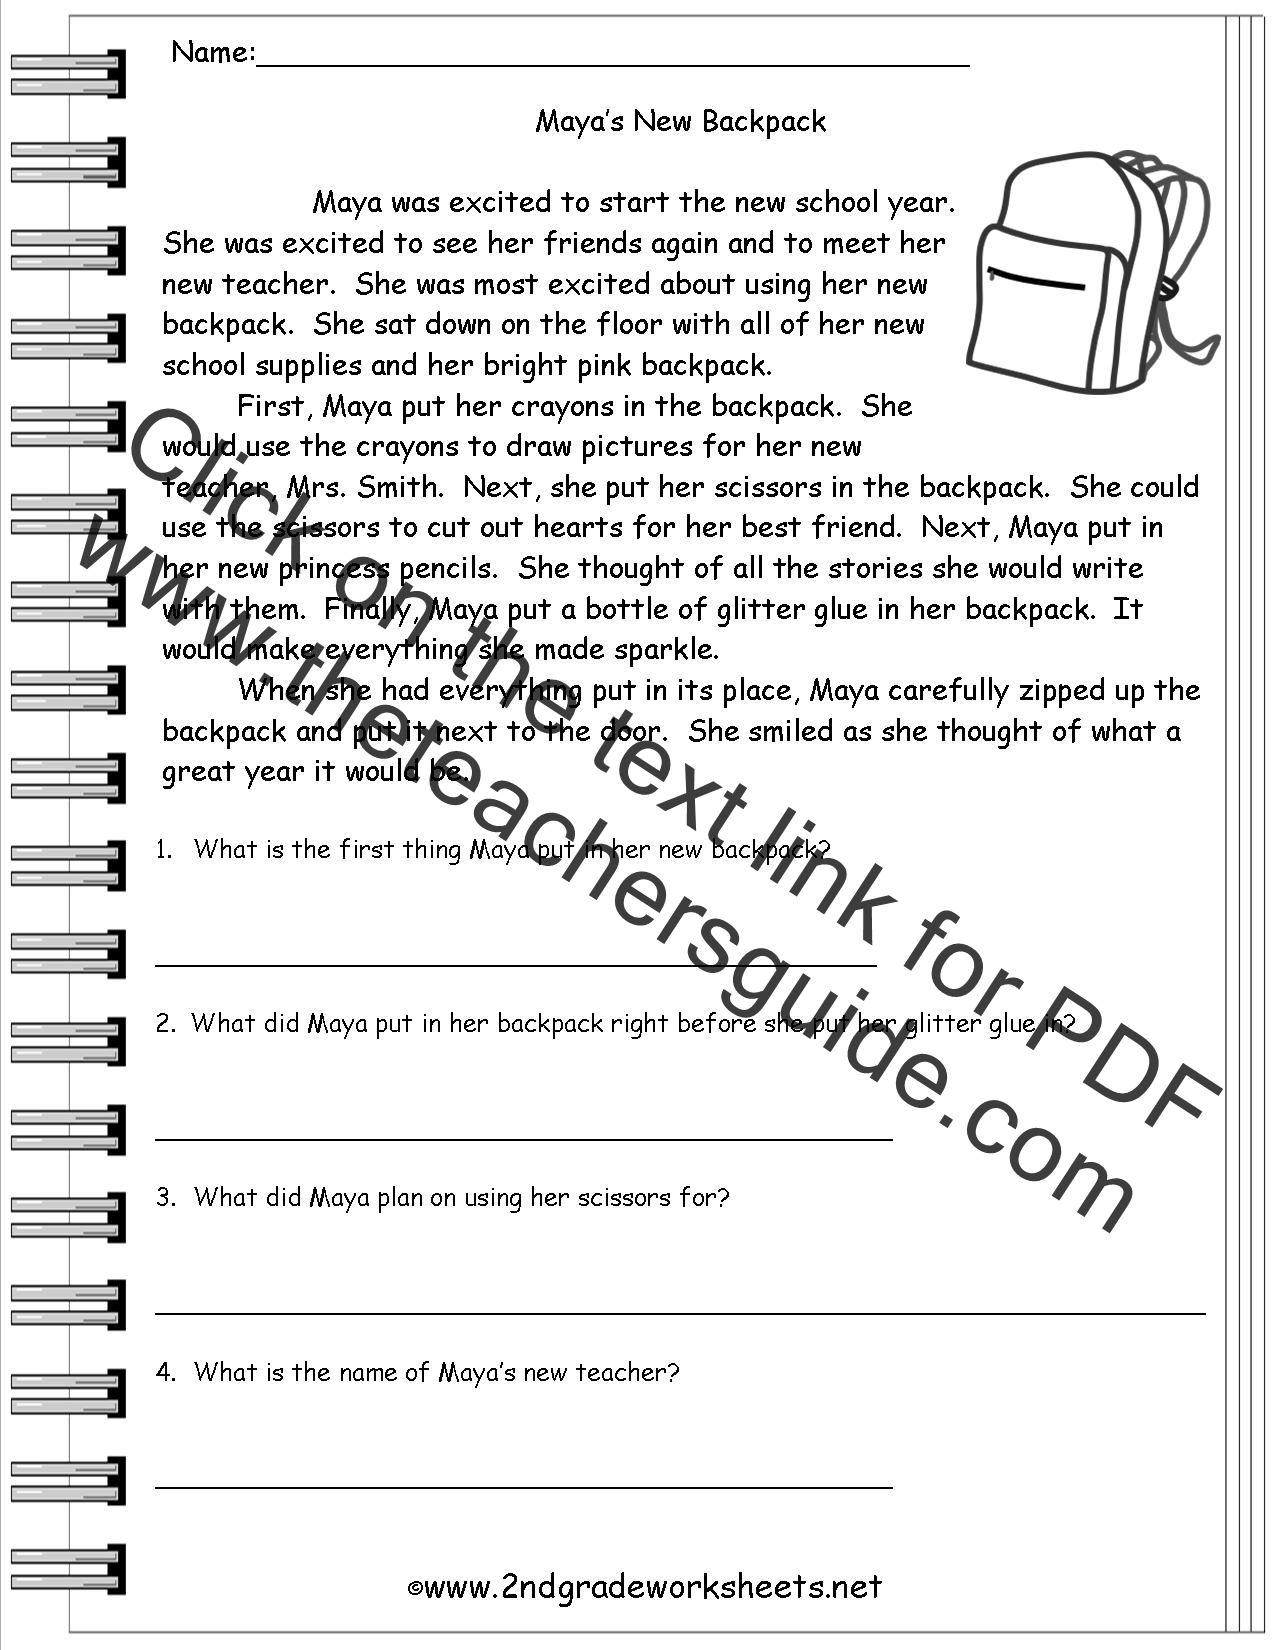 Worksheets 3rd Grade Main Idea Worksheets reading worksheeets worksheets